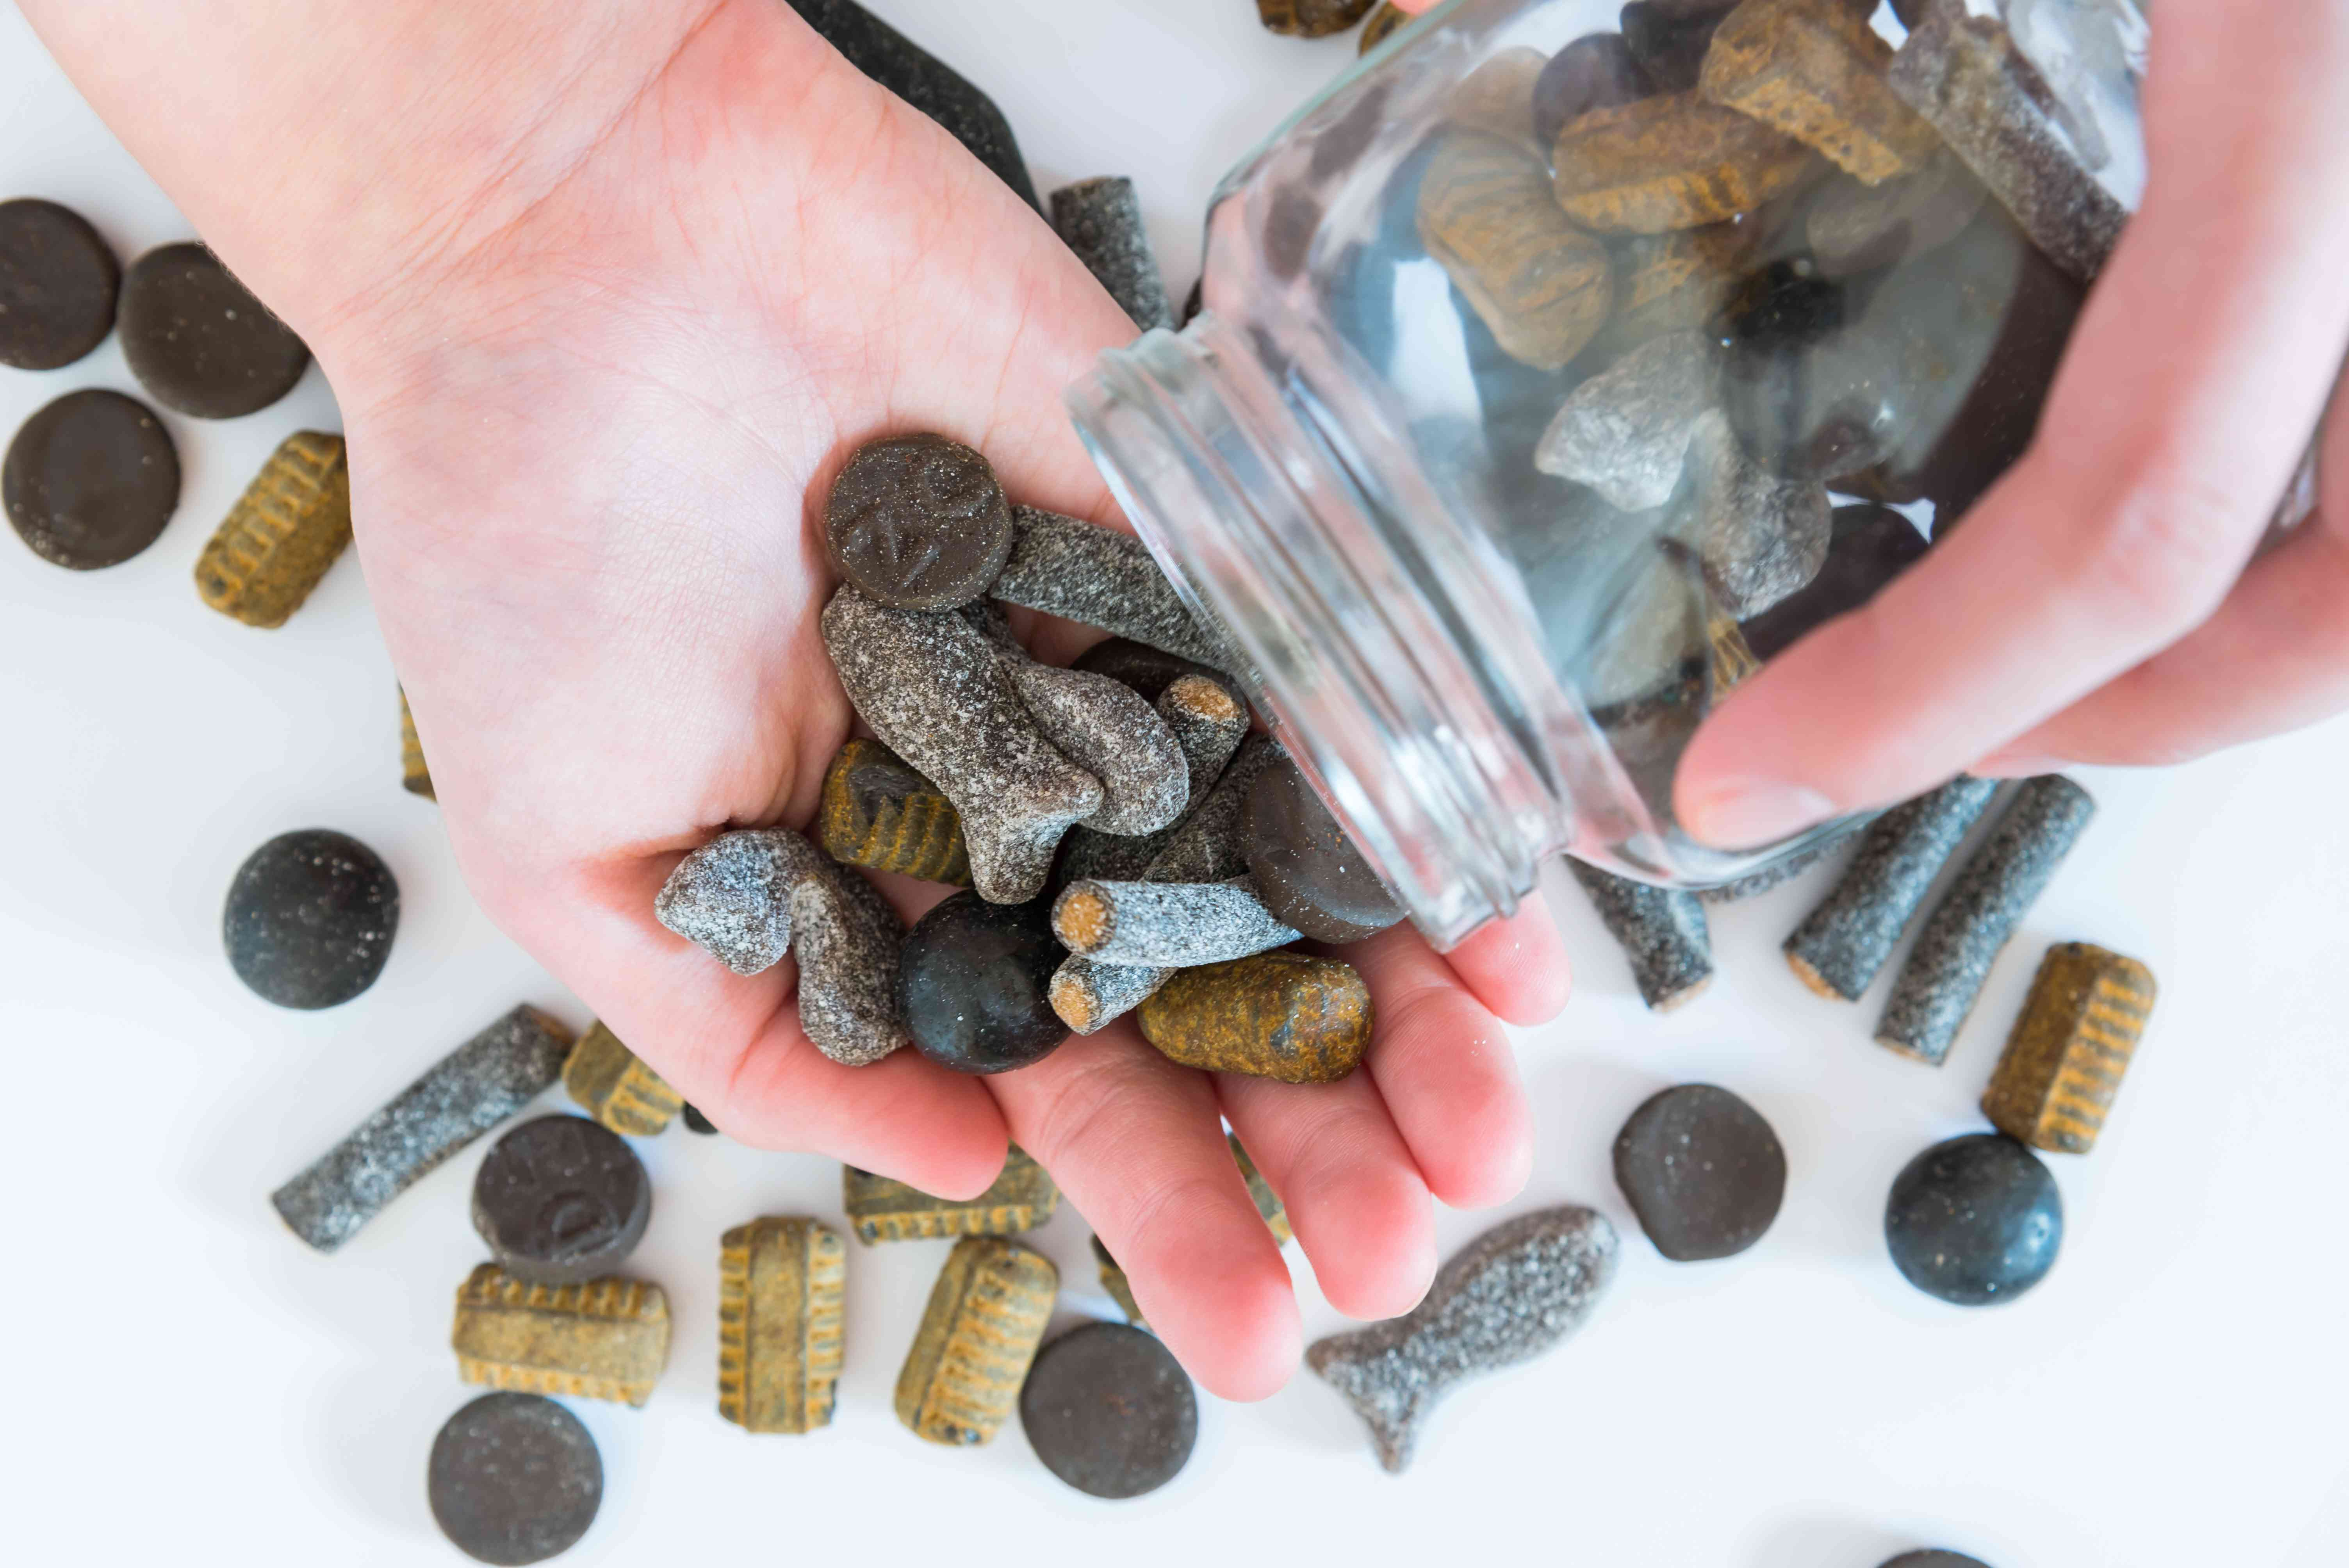 Assorted double salted licorice being poured from candy jar into woman's hand